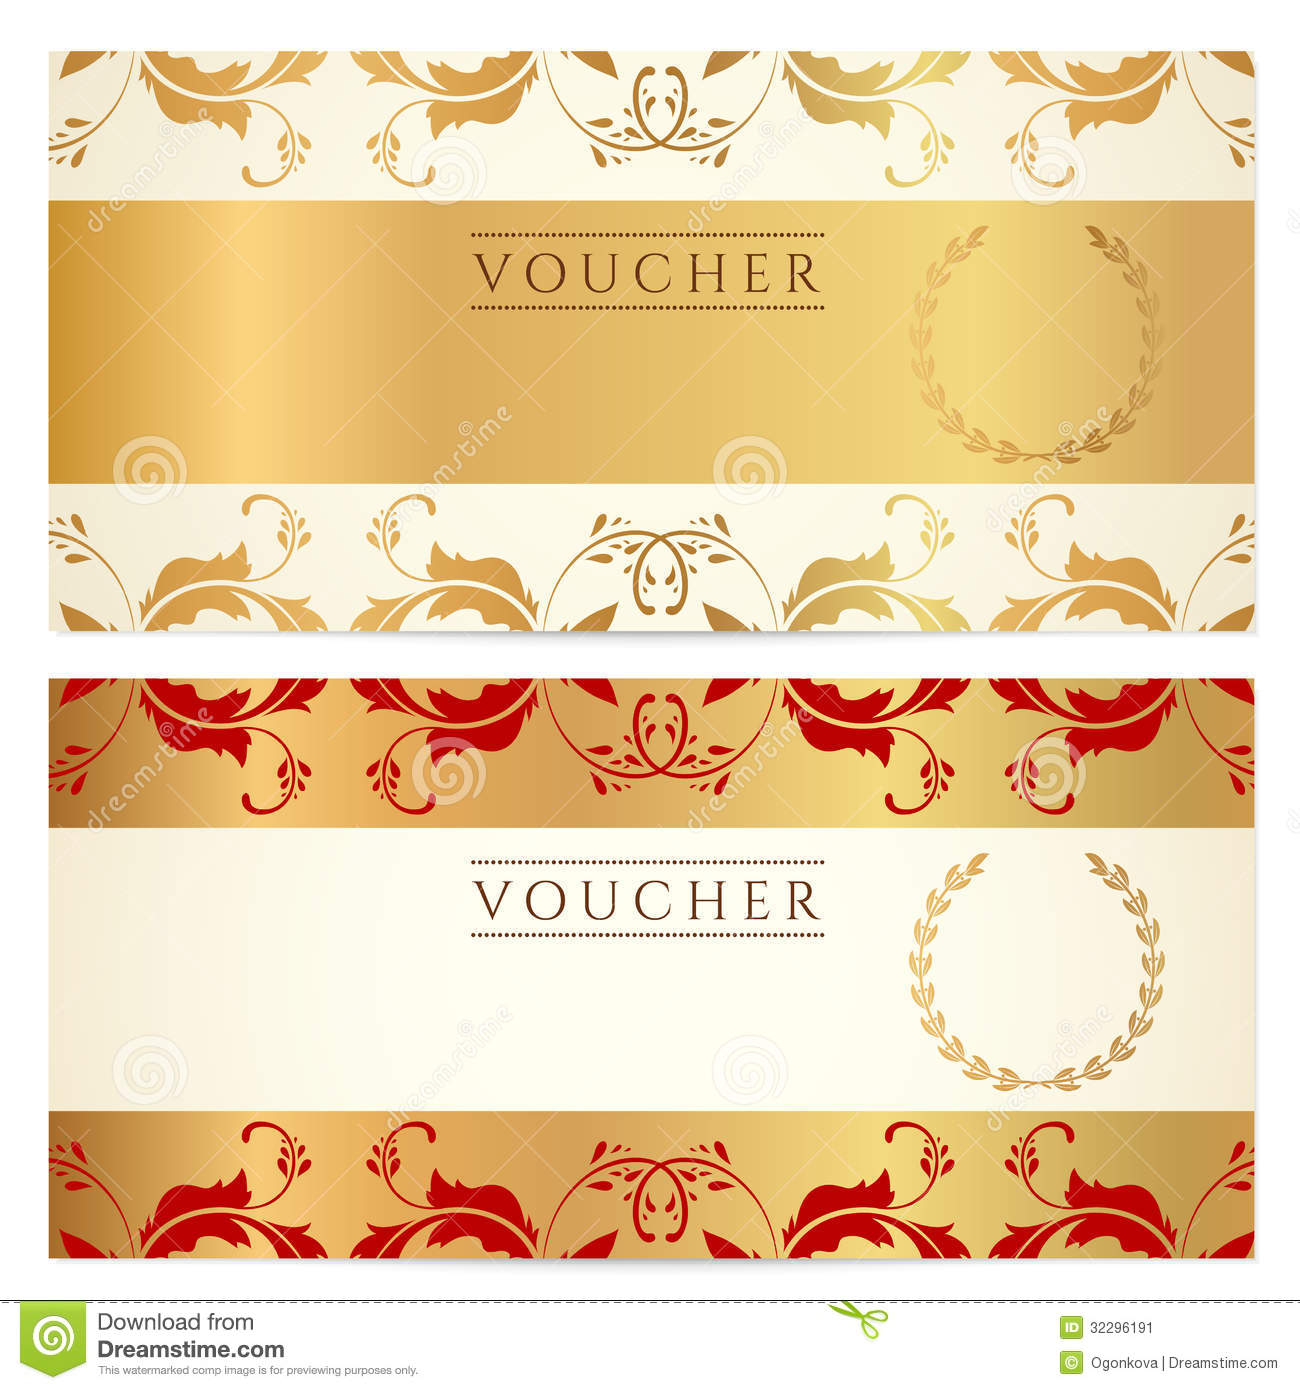 Gift Certificate Voucher Coupon Template Image Image – Template for a Voucher